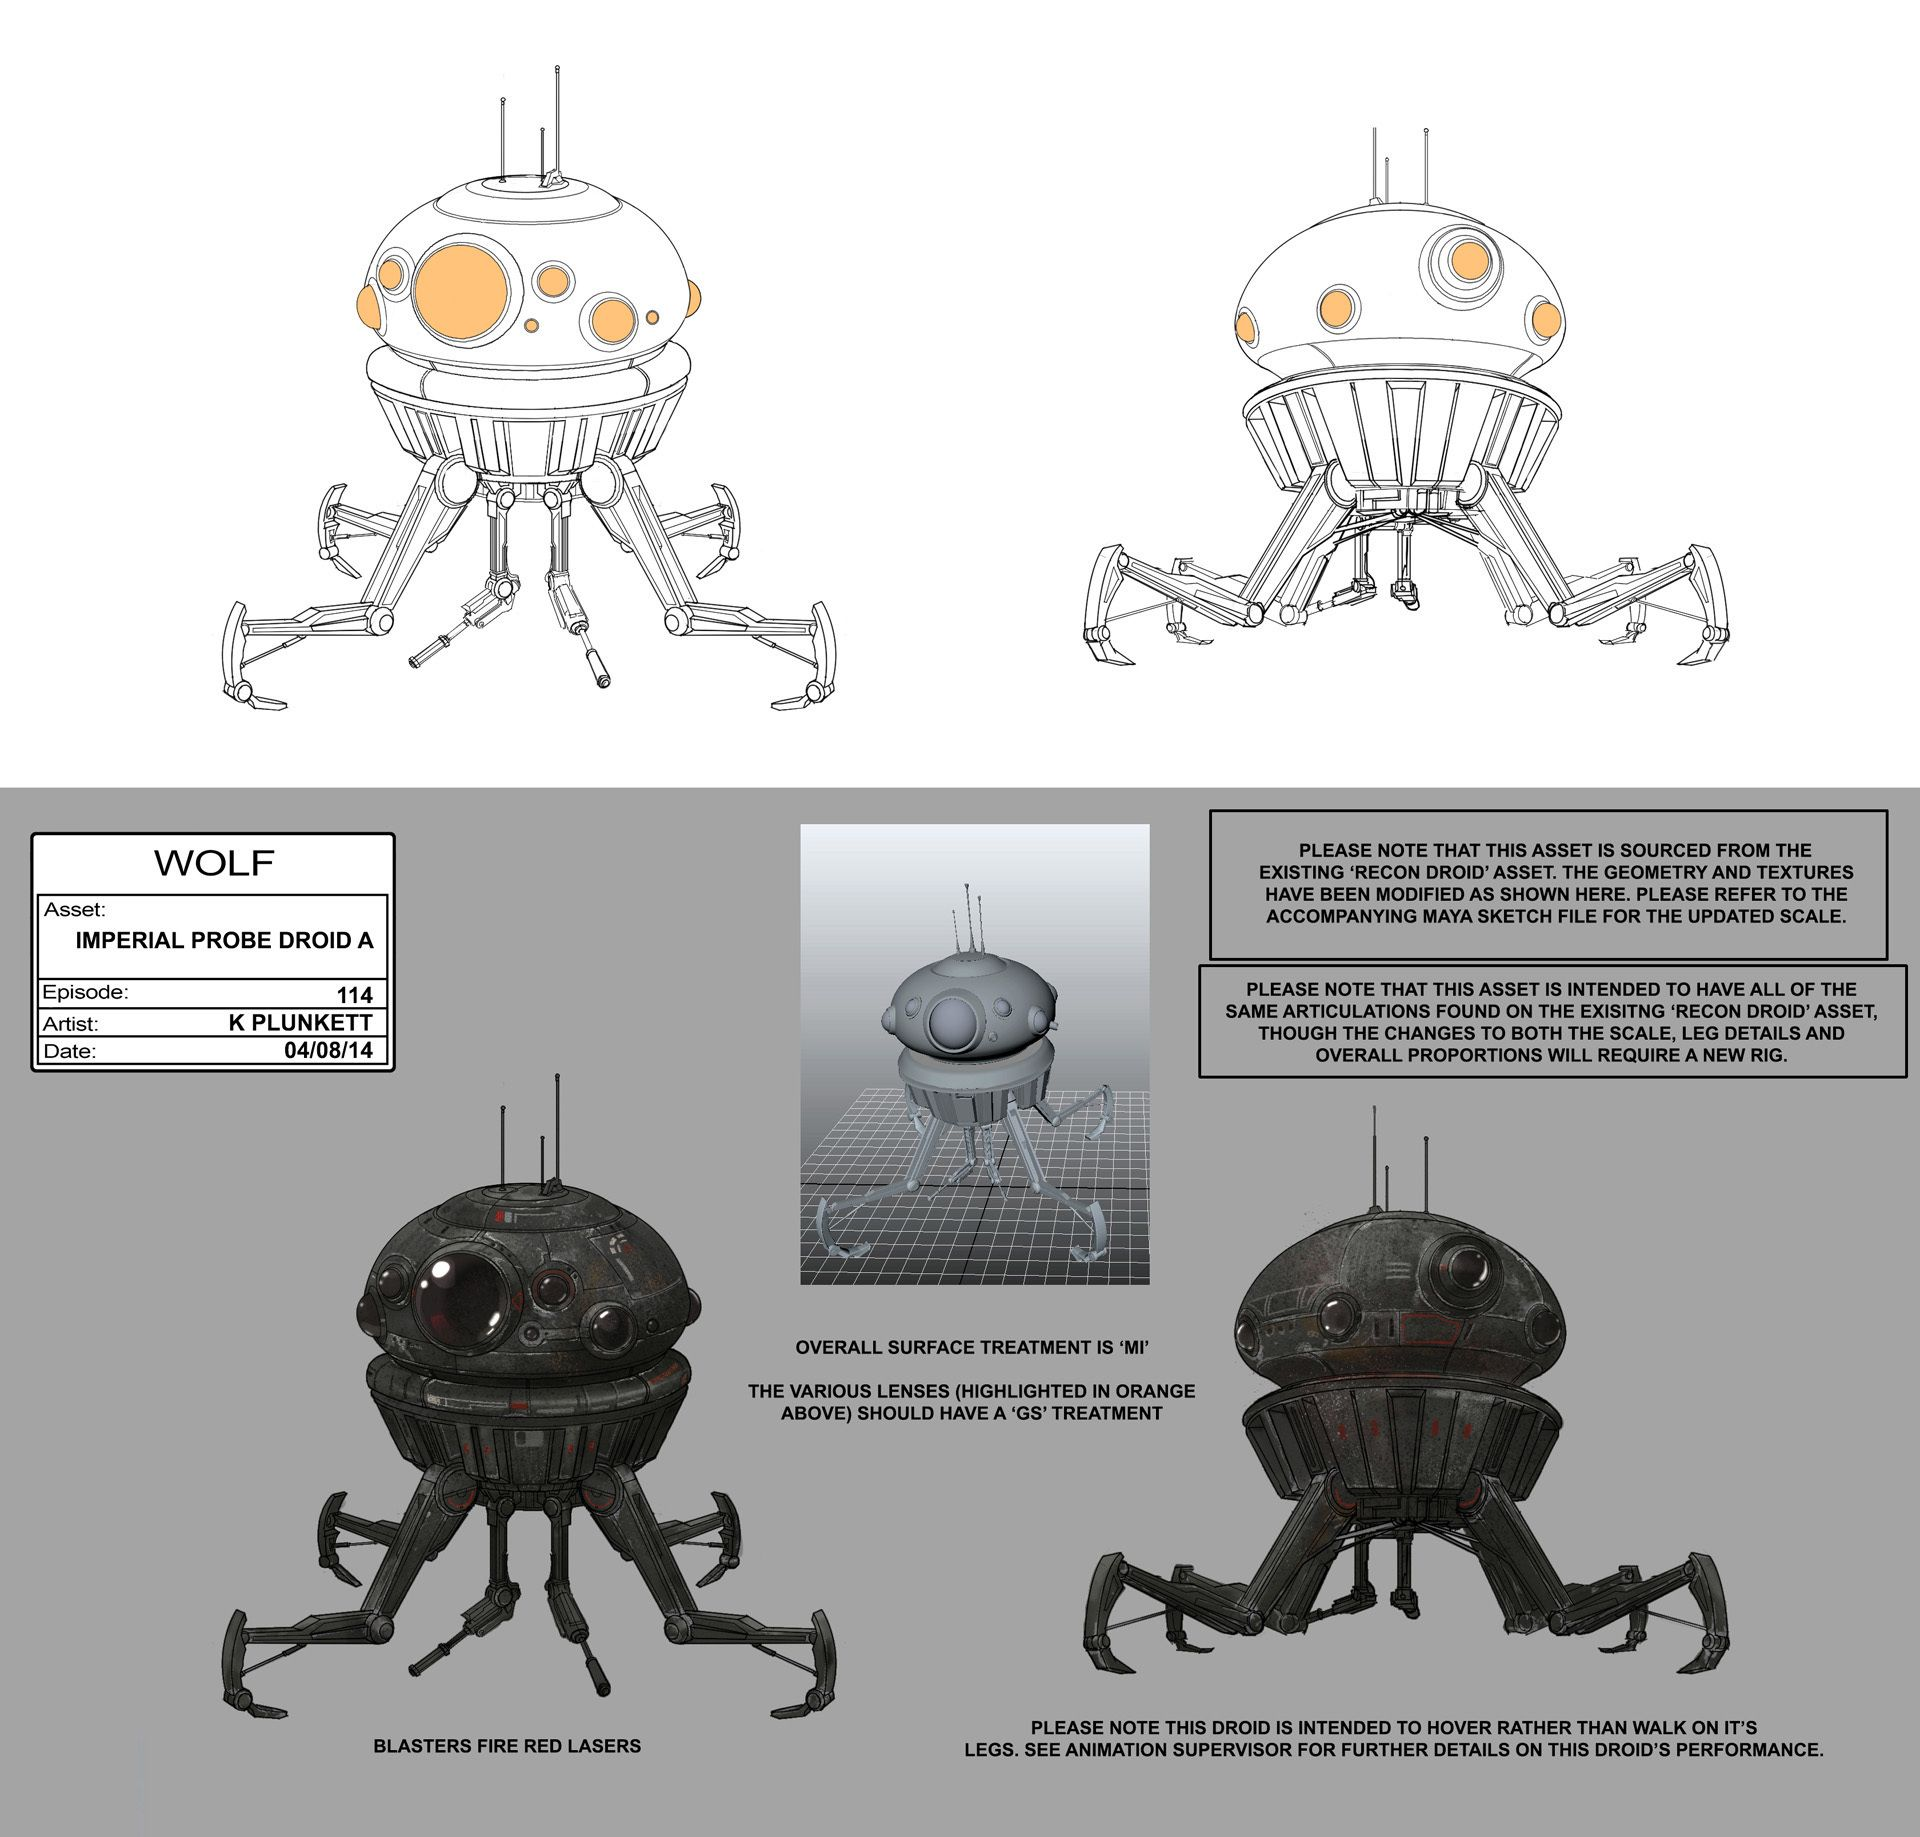 Clone Wars Rebels Concept Art From Paper To Animation Page 4 Jedi Council Forums Star Wars Vehicles Star Wars Trooper Star Wars Concept Art